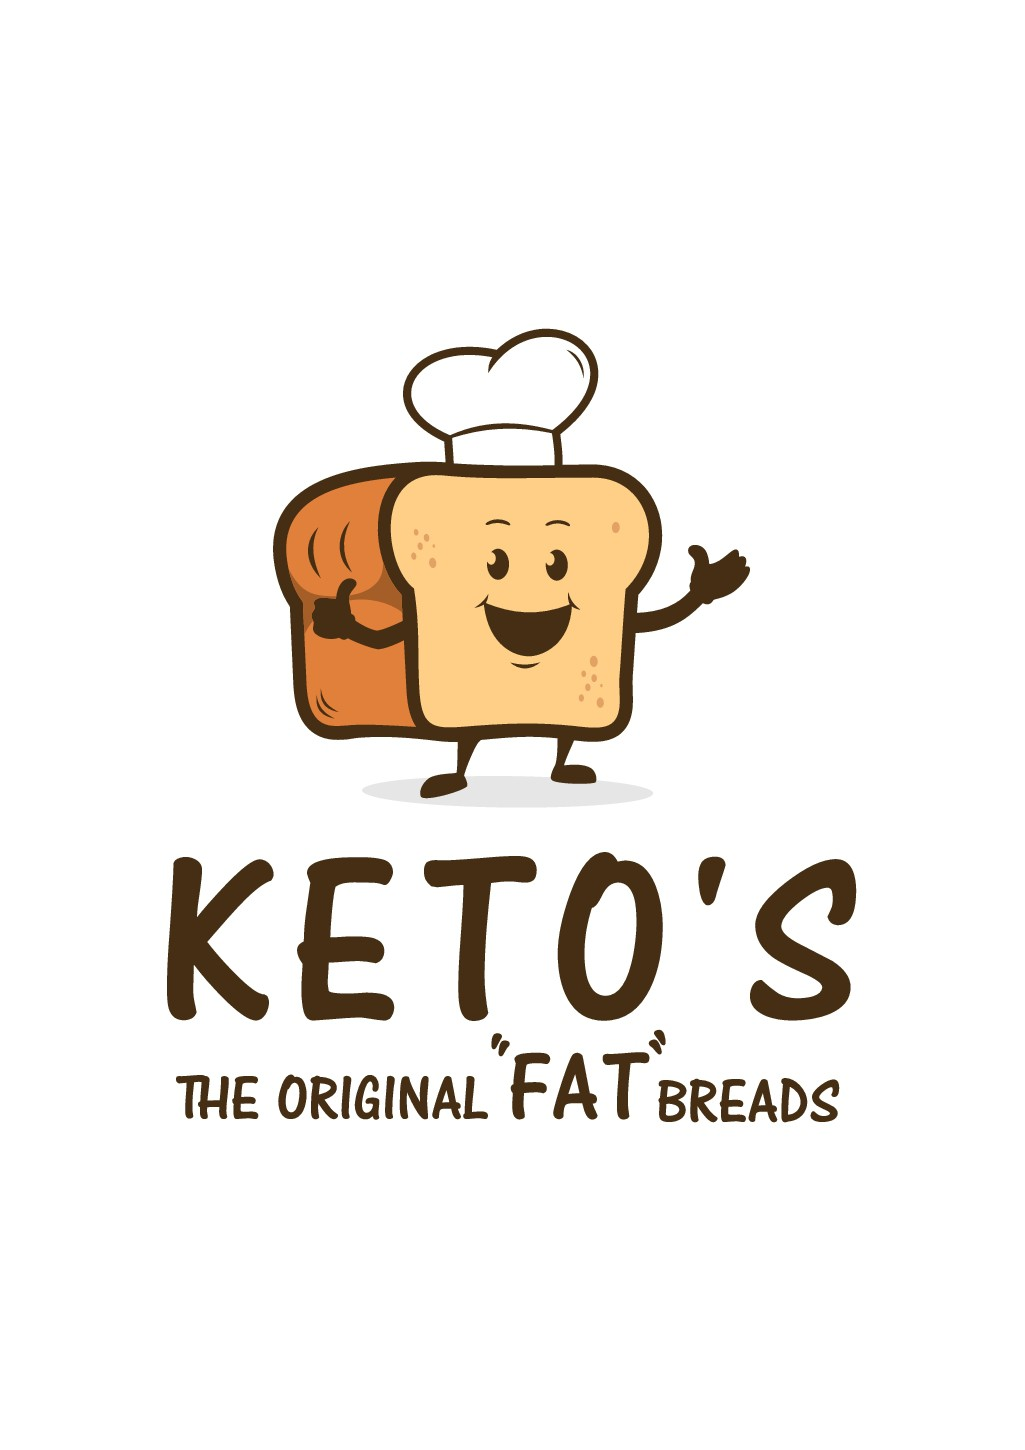 """Go Crazy Designing A Funny Logo For What We Hope becomes the """"halo top"""" of keto breads"""